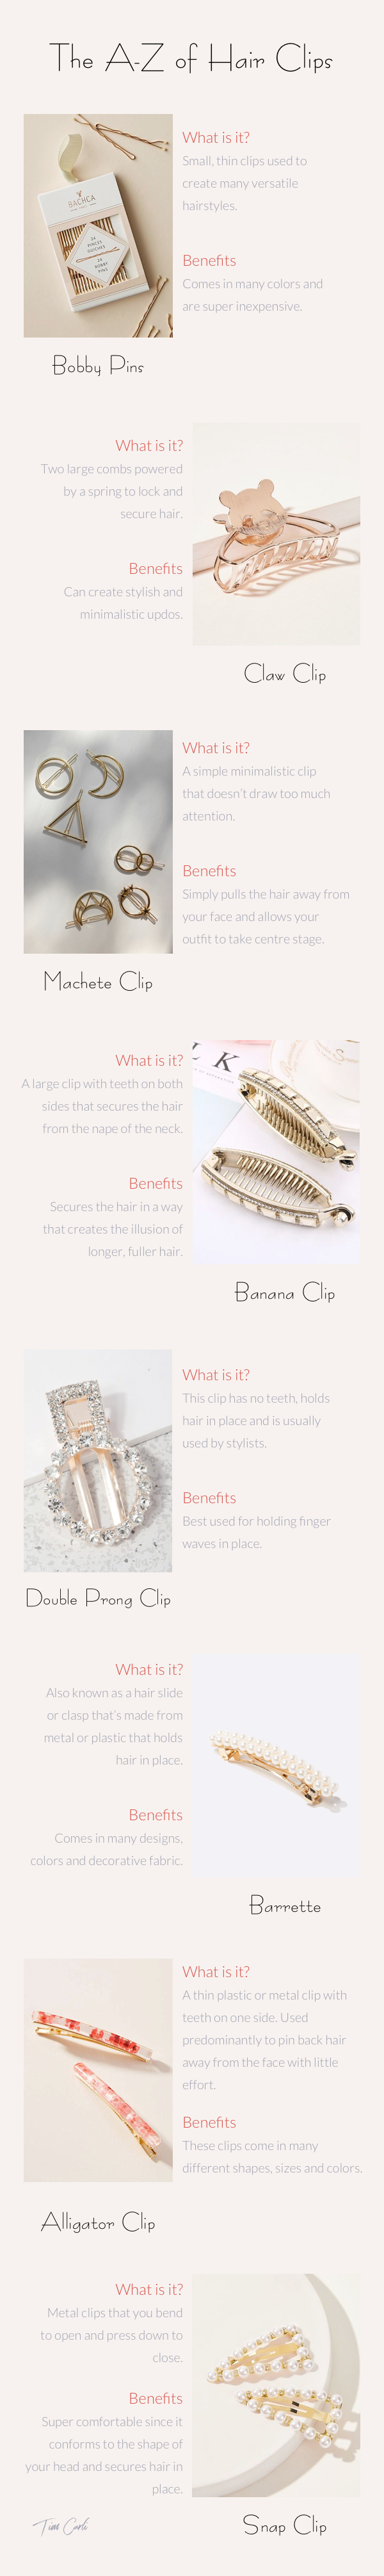 Tim Carli Blog   Oh Snap! How to Wear Hair Clips   Hair Blog   Hair Clip Infographic   Hair clips trends   Trending hair clips   most popular hair clips   what is a snap clip   barettes